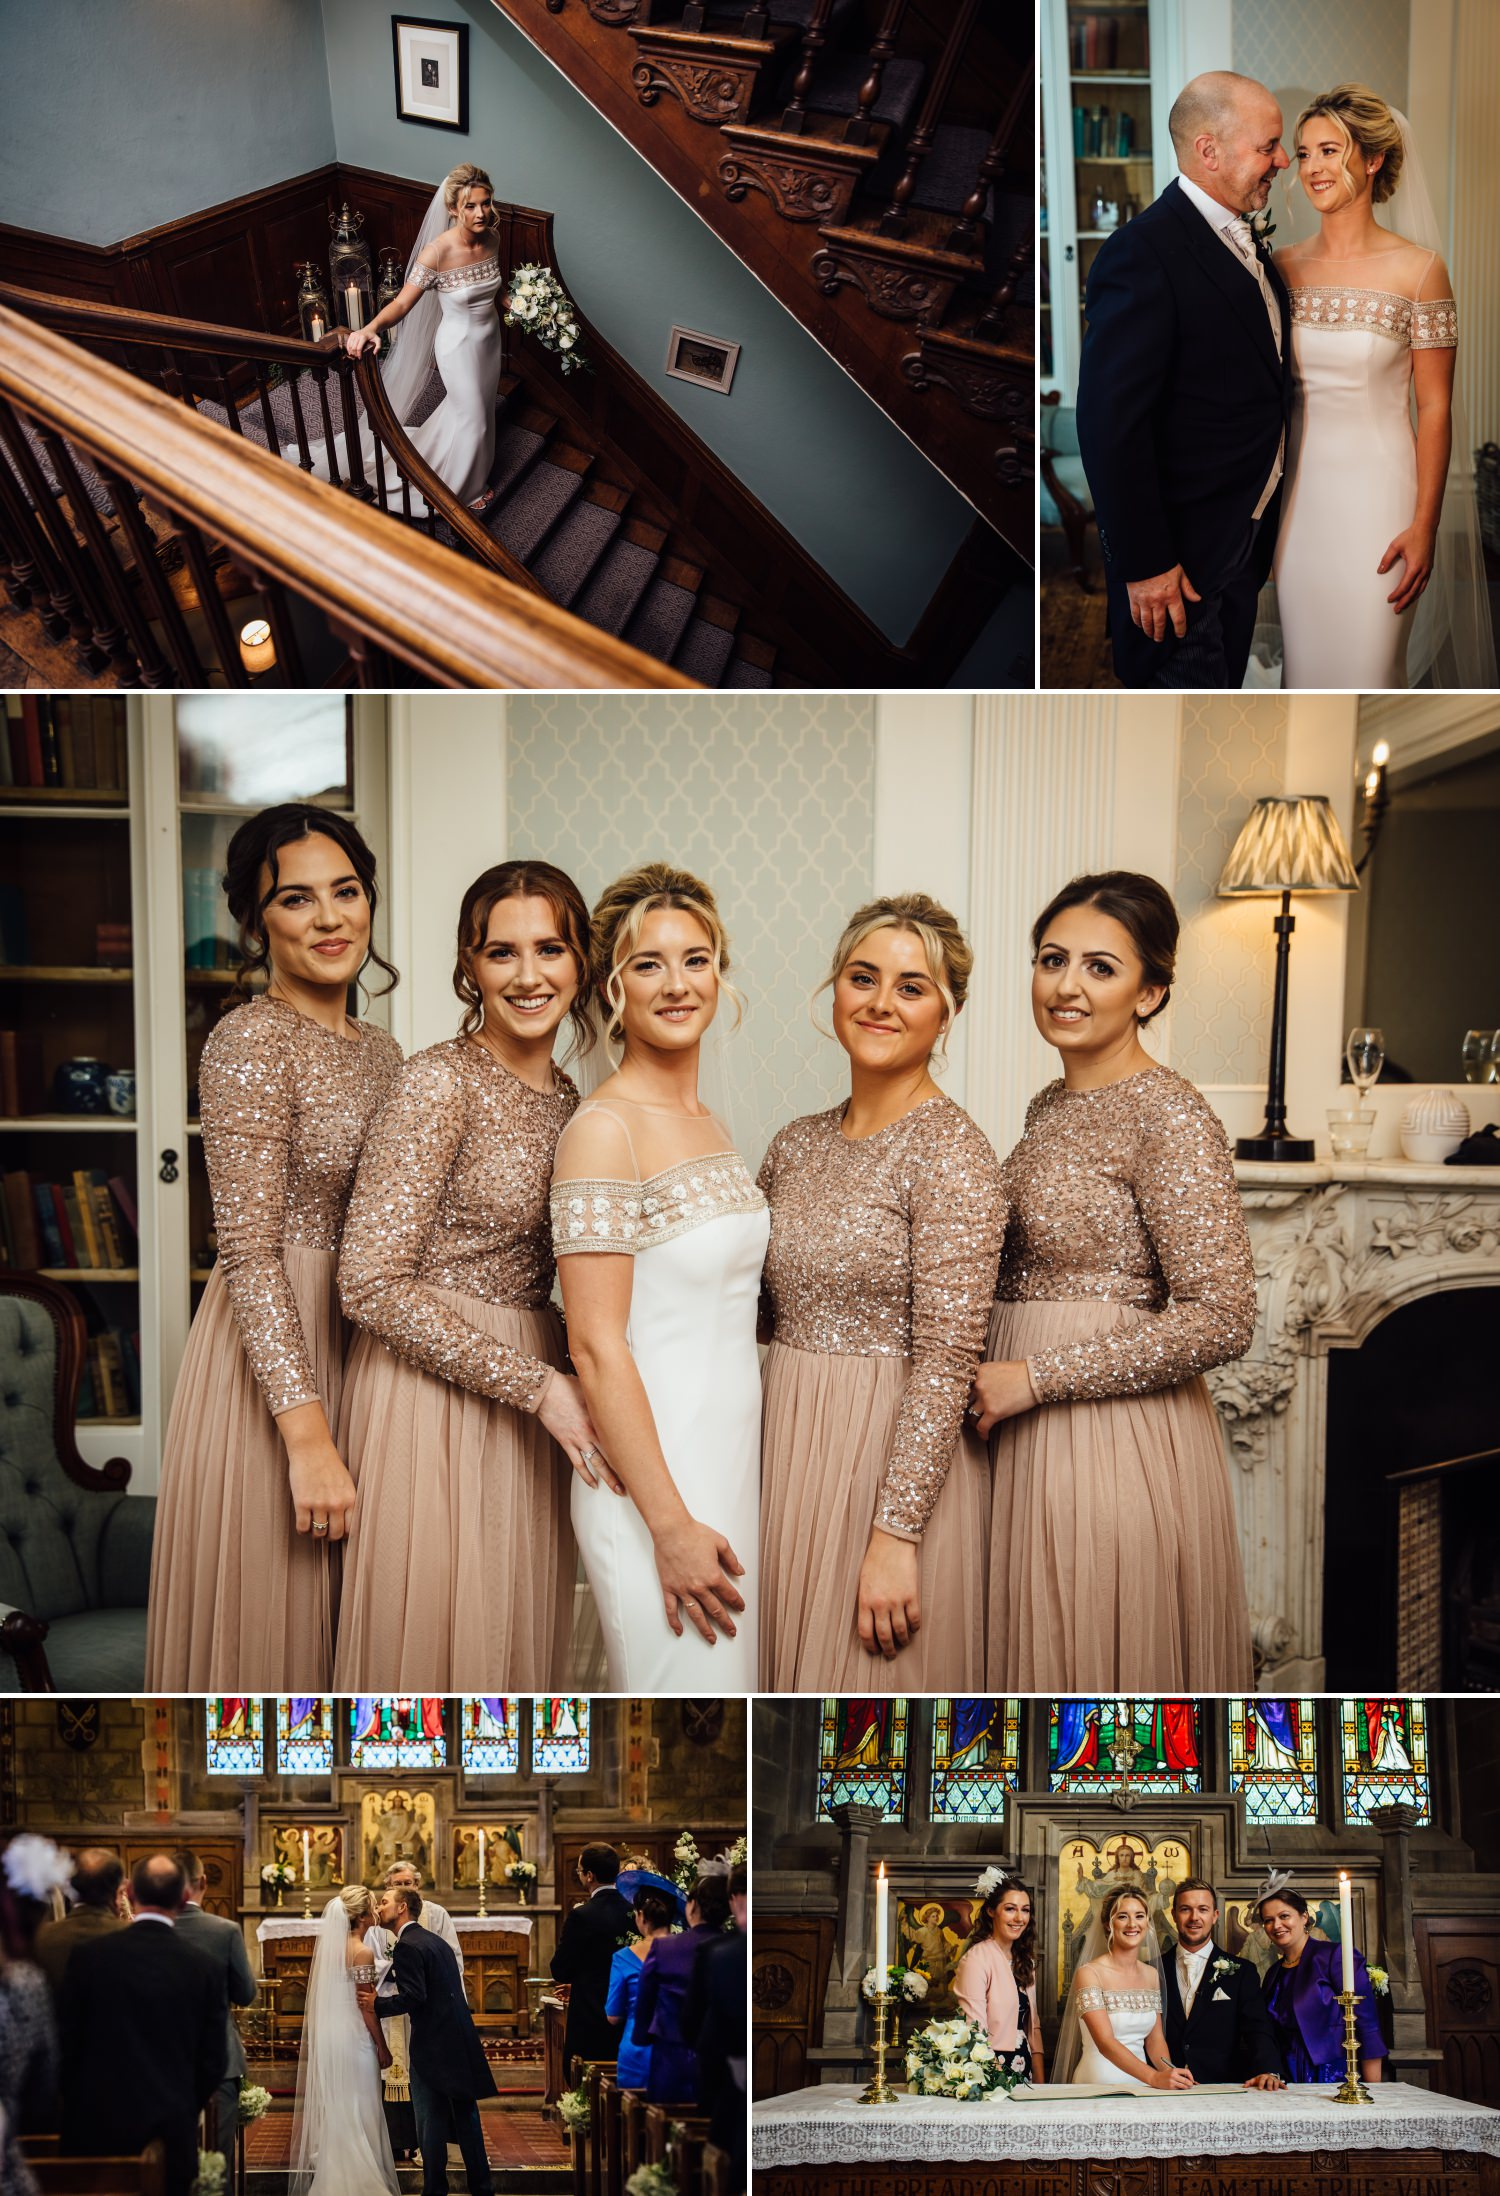 wedding photography collage showing the bride getting ready to leave for the church